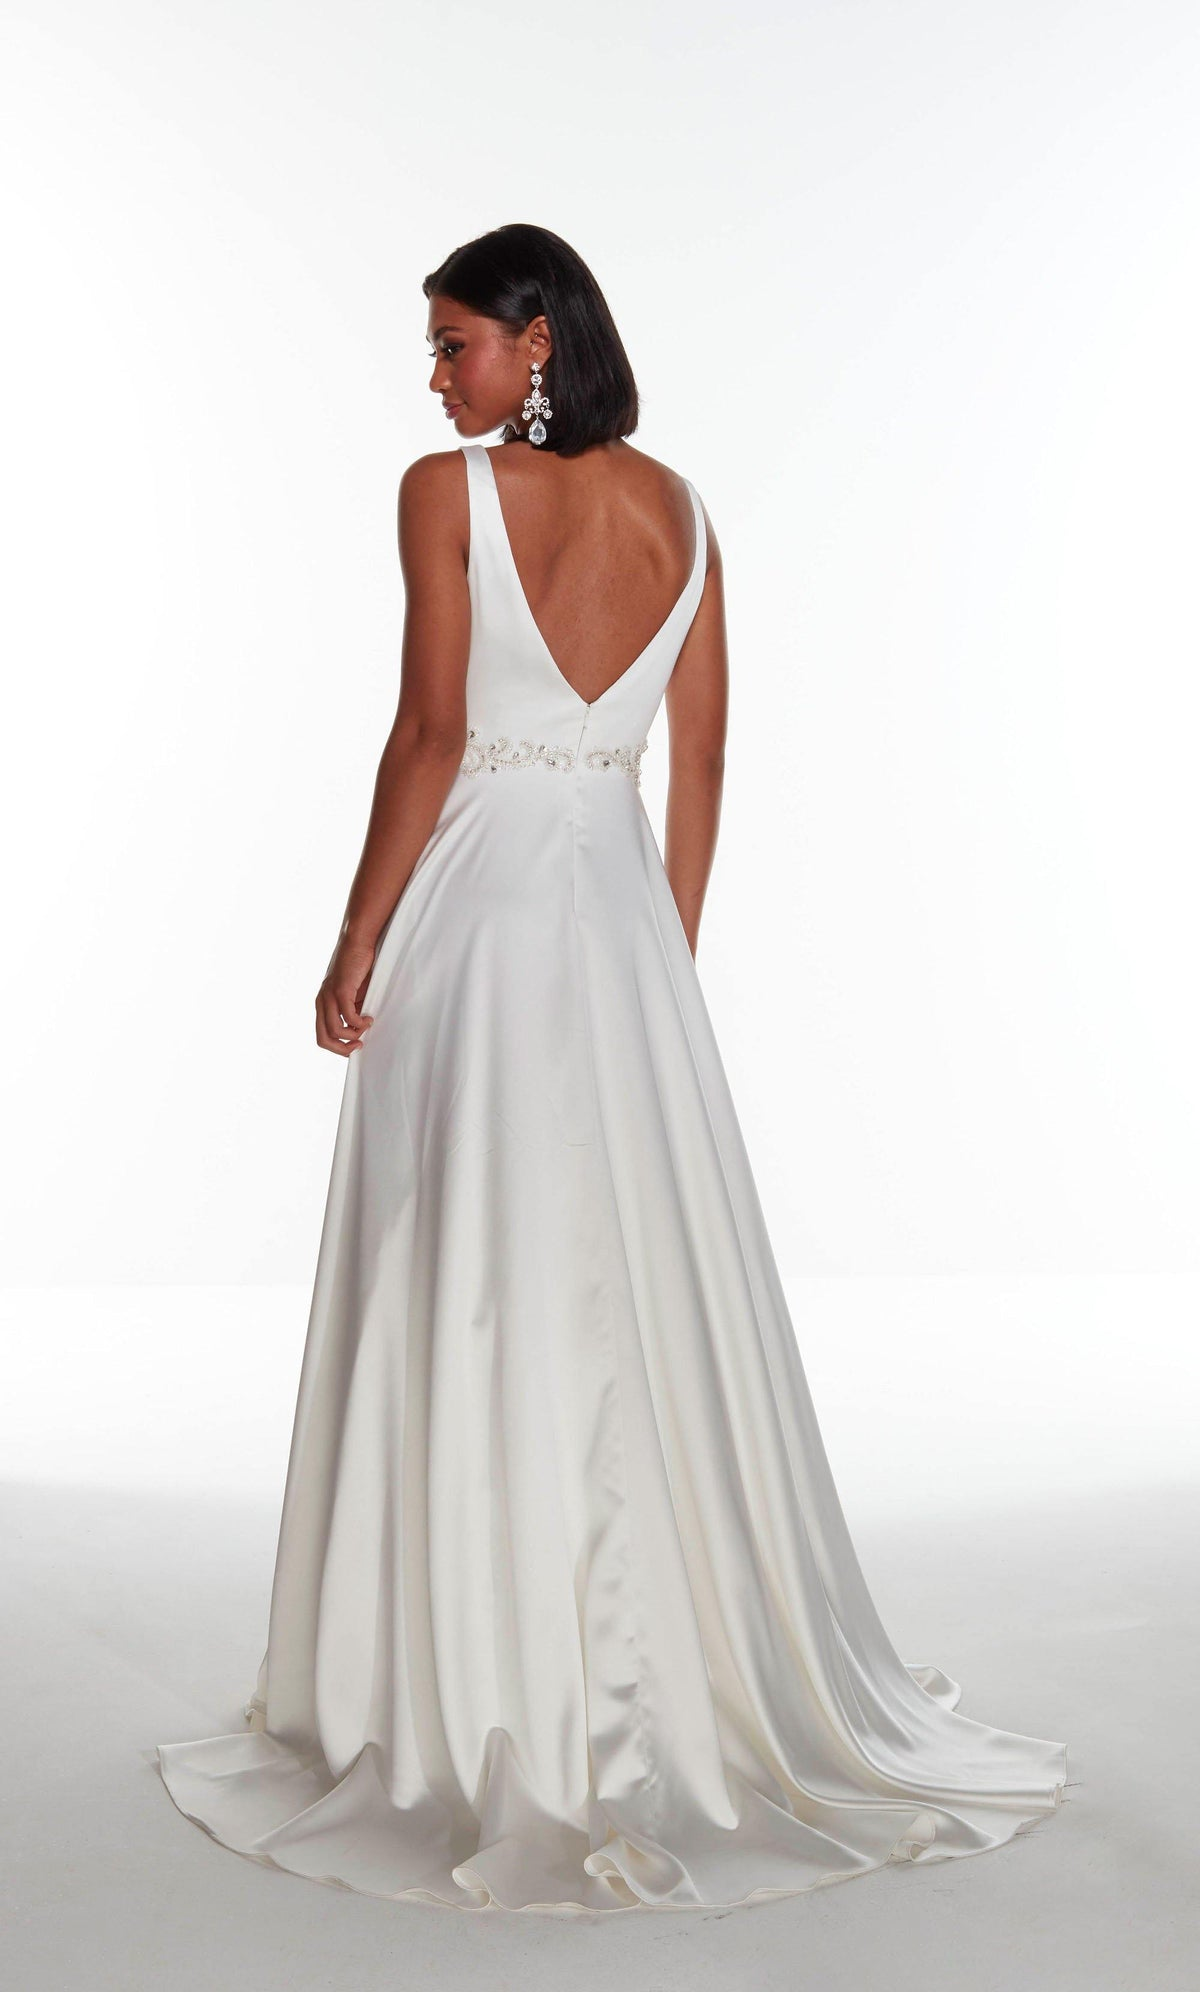 Diamond White luminous satin informal bridal dress with a V back, beaded natural waistline, and train